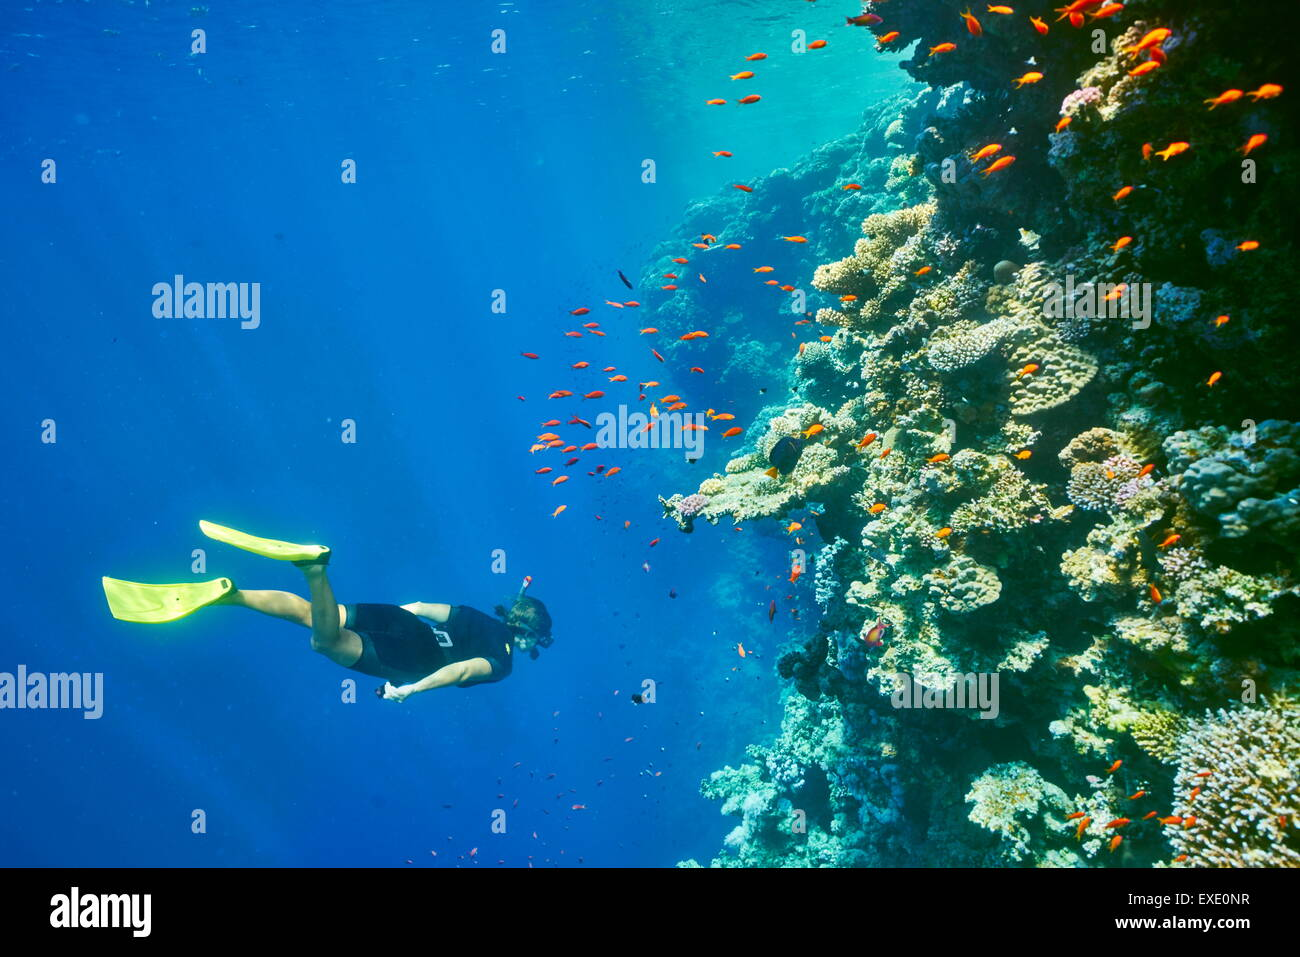 Red Sea, Egypt - woman snorkeling underwater, coral reef, Blue Hole near Dahab - Stock Image